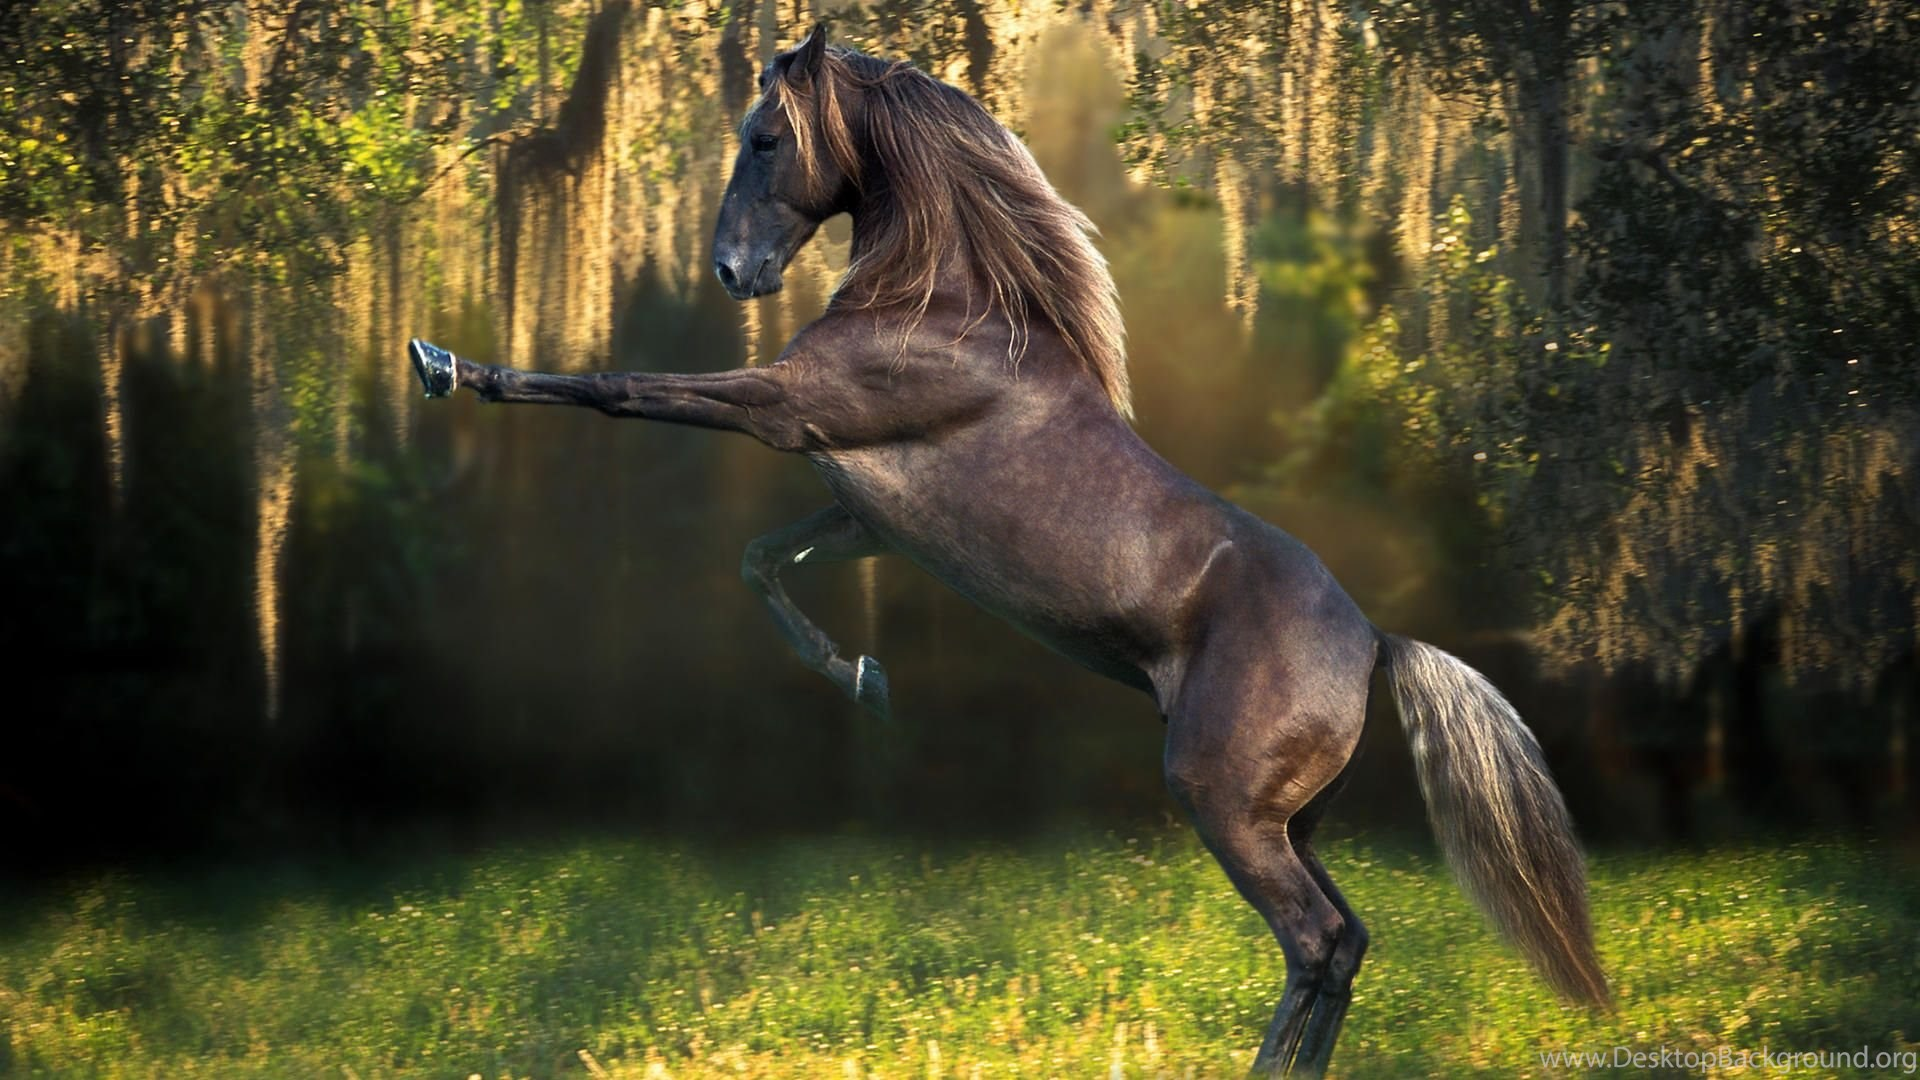 Horse Wallpapers For Laptops 16175 Hd Wallpapers Site Desktop Background